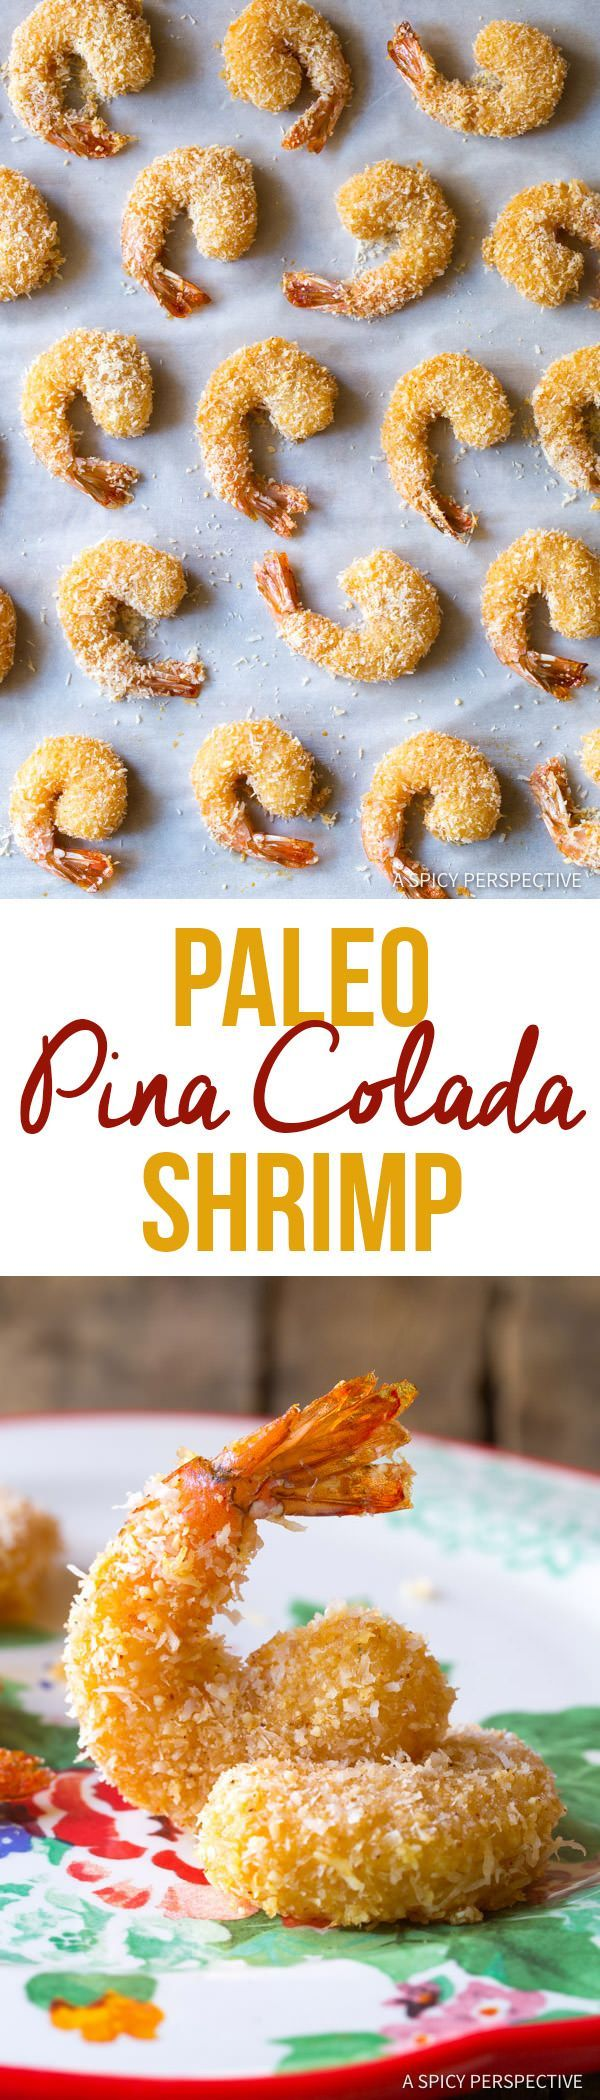 Healthy Paleo Coconut Shrimp Recipe (Pina Colada Shrimp & Gluten Free!) | ASpicyPerspective...